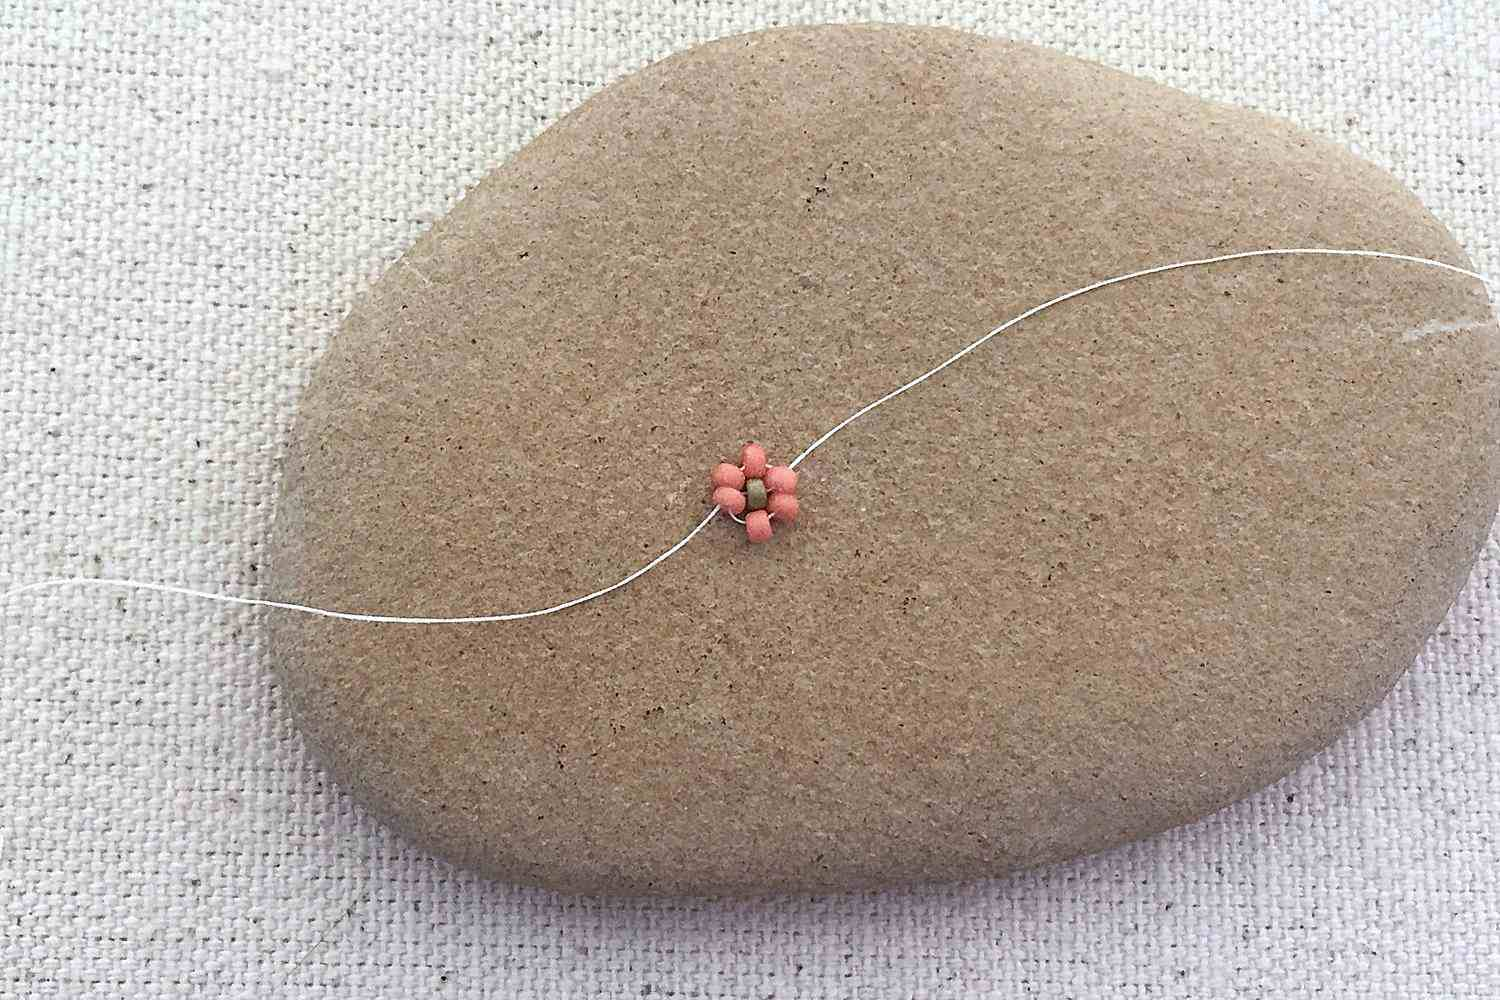 Pulling thread tight to arrange the petals and daisy center